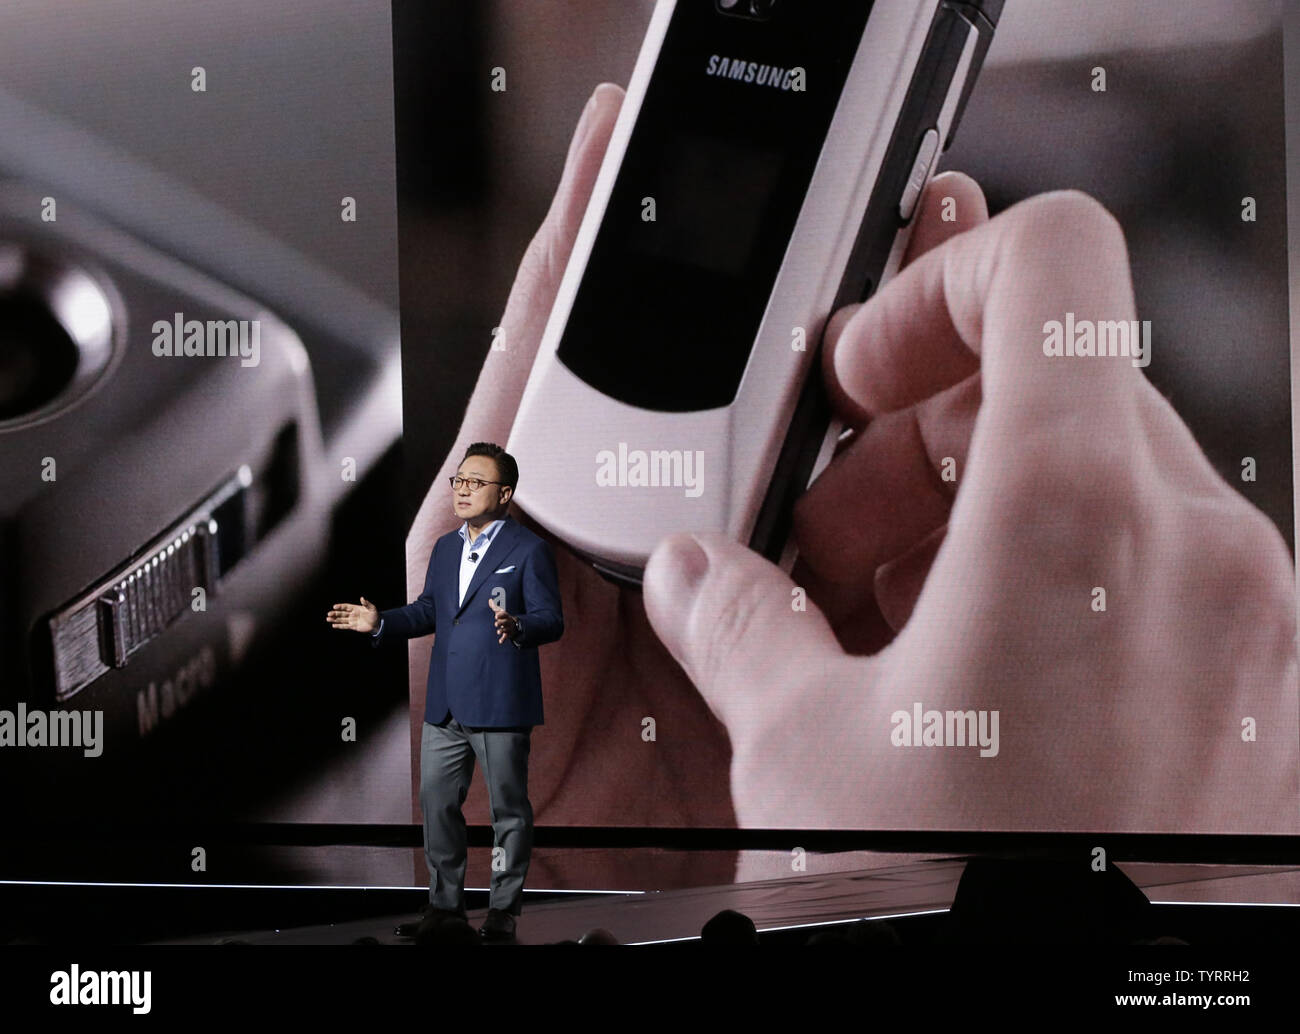 Mobil Devices Stock Photos & Mobil Devices Stock Images - Alamy